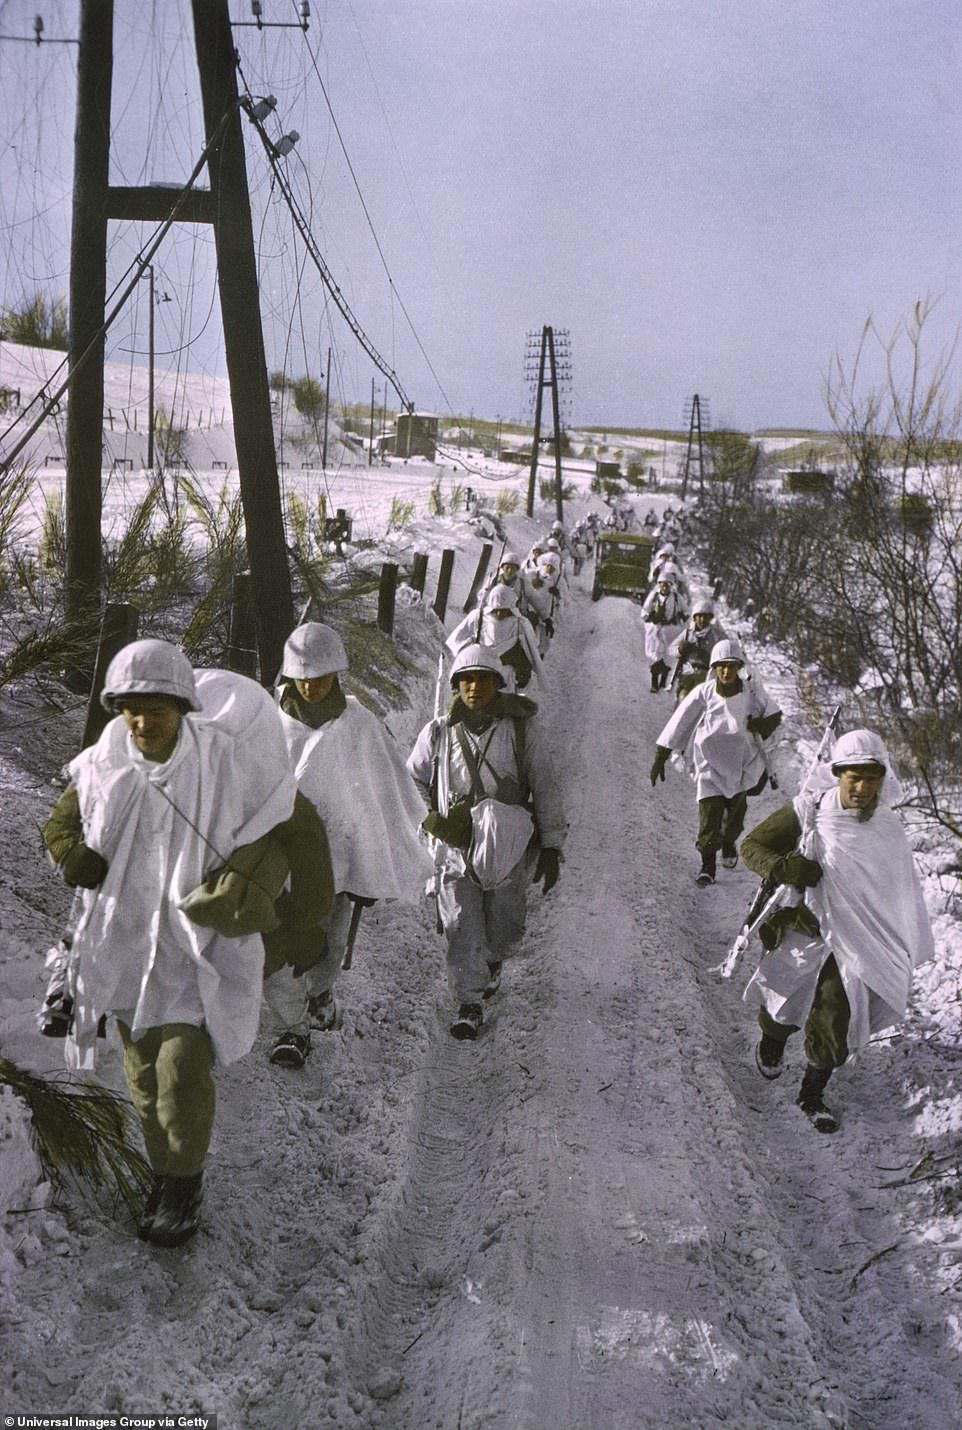 190-8176637-Soldiers_march_down_a_snowy_track_running_through_the_western_fr-a-120_1585754588777.jpg